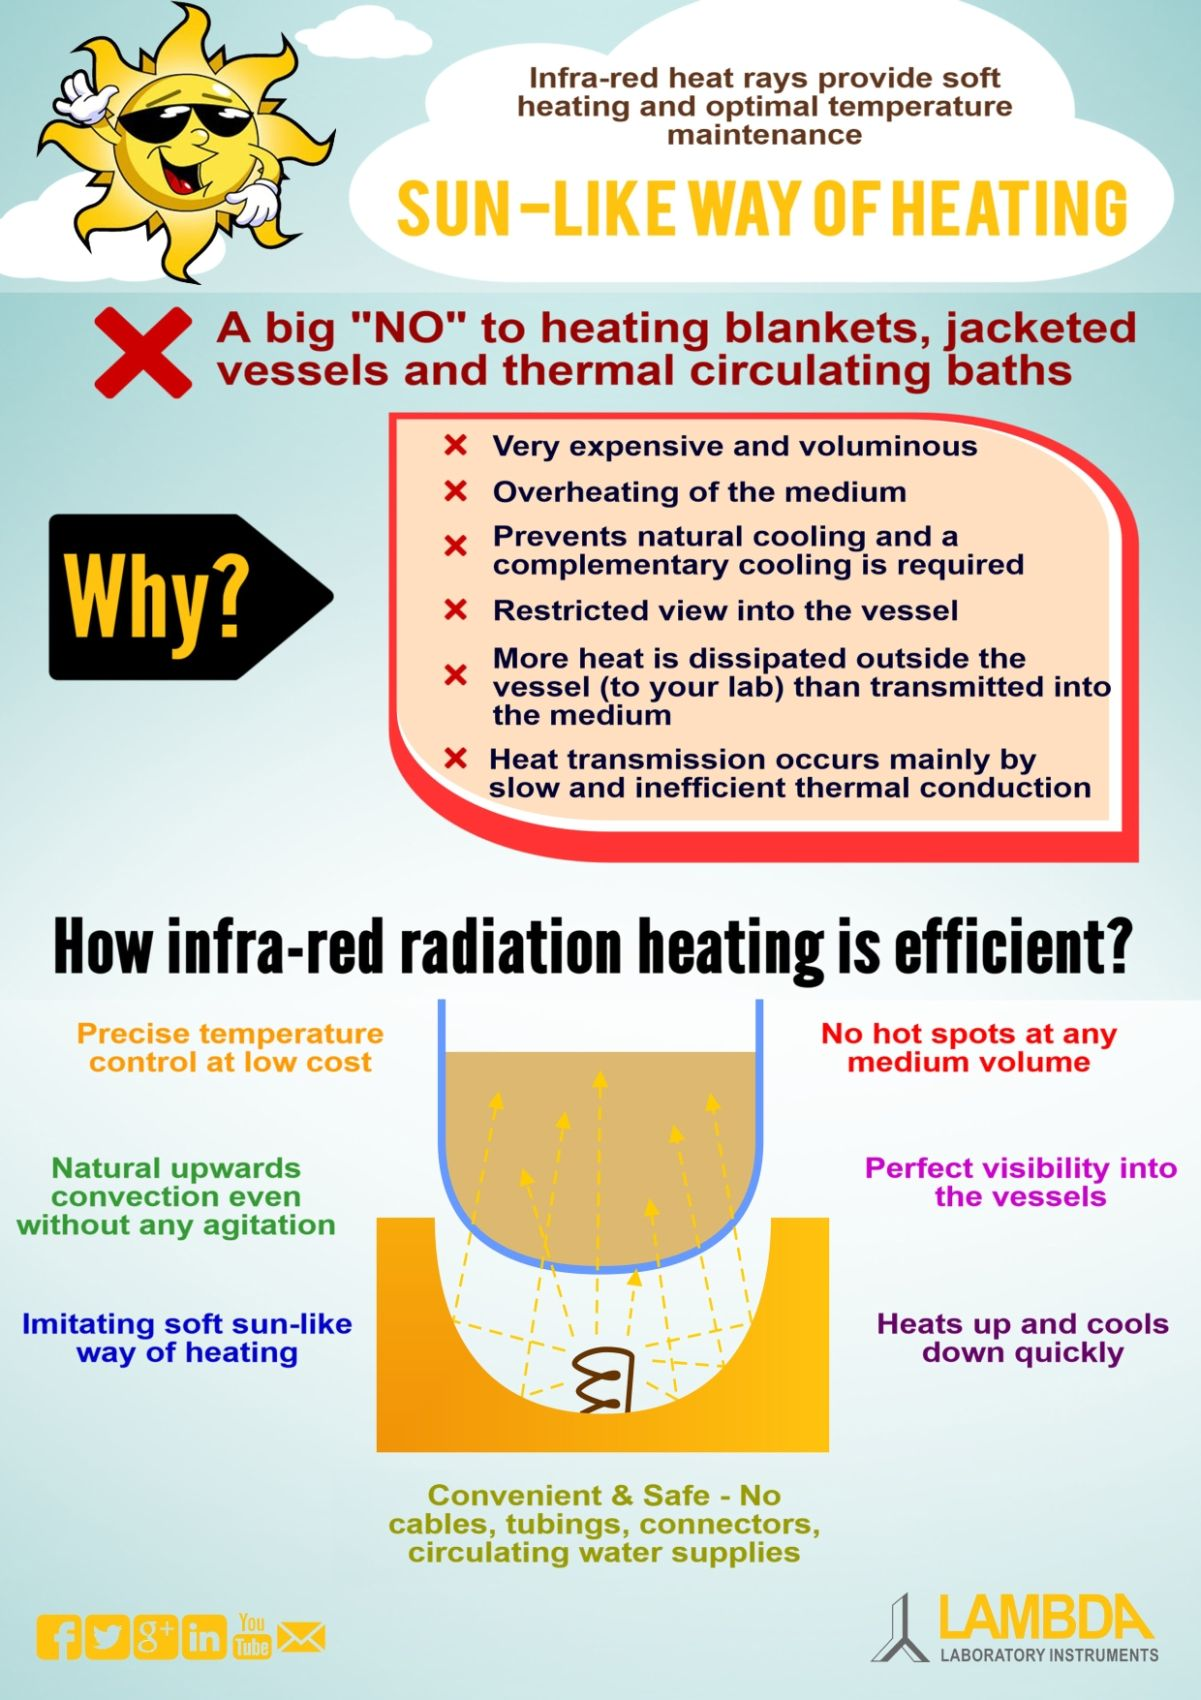 Infra-red heat rays provide soft heating and optimal temperature maintenance